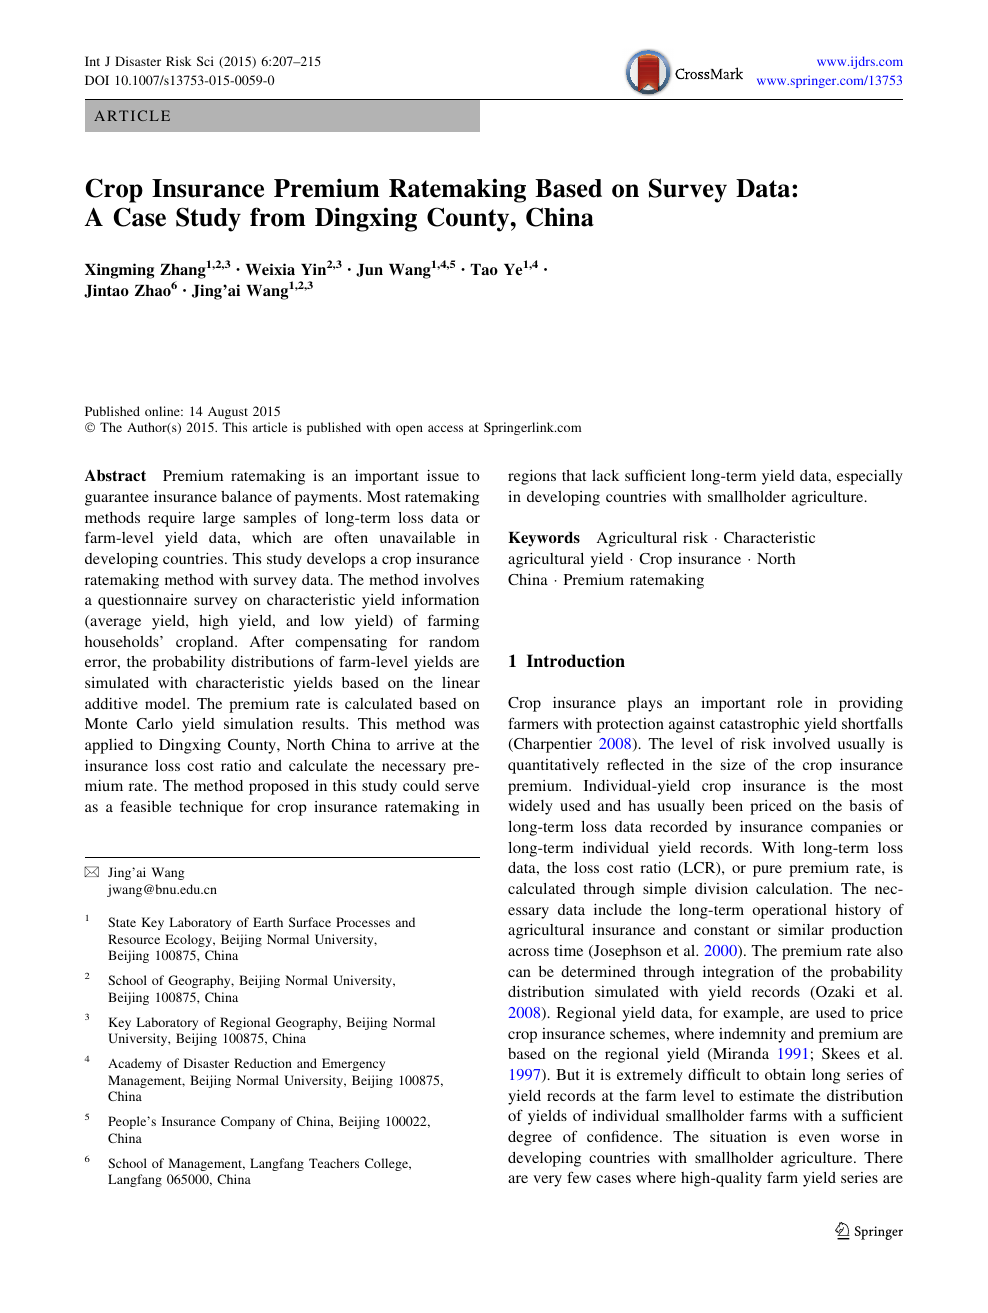 Crop Insurance Premium Ratemaking Based On Survey Data A Case Study From Dingxing County China Topic Of Research Paper In Agriculture Forestry And Fisheries Download Scholarly Article Pdf And Read For